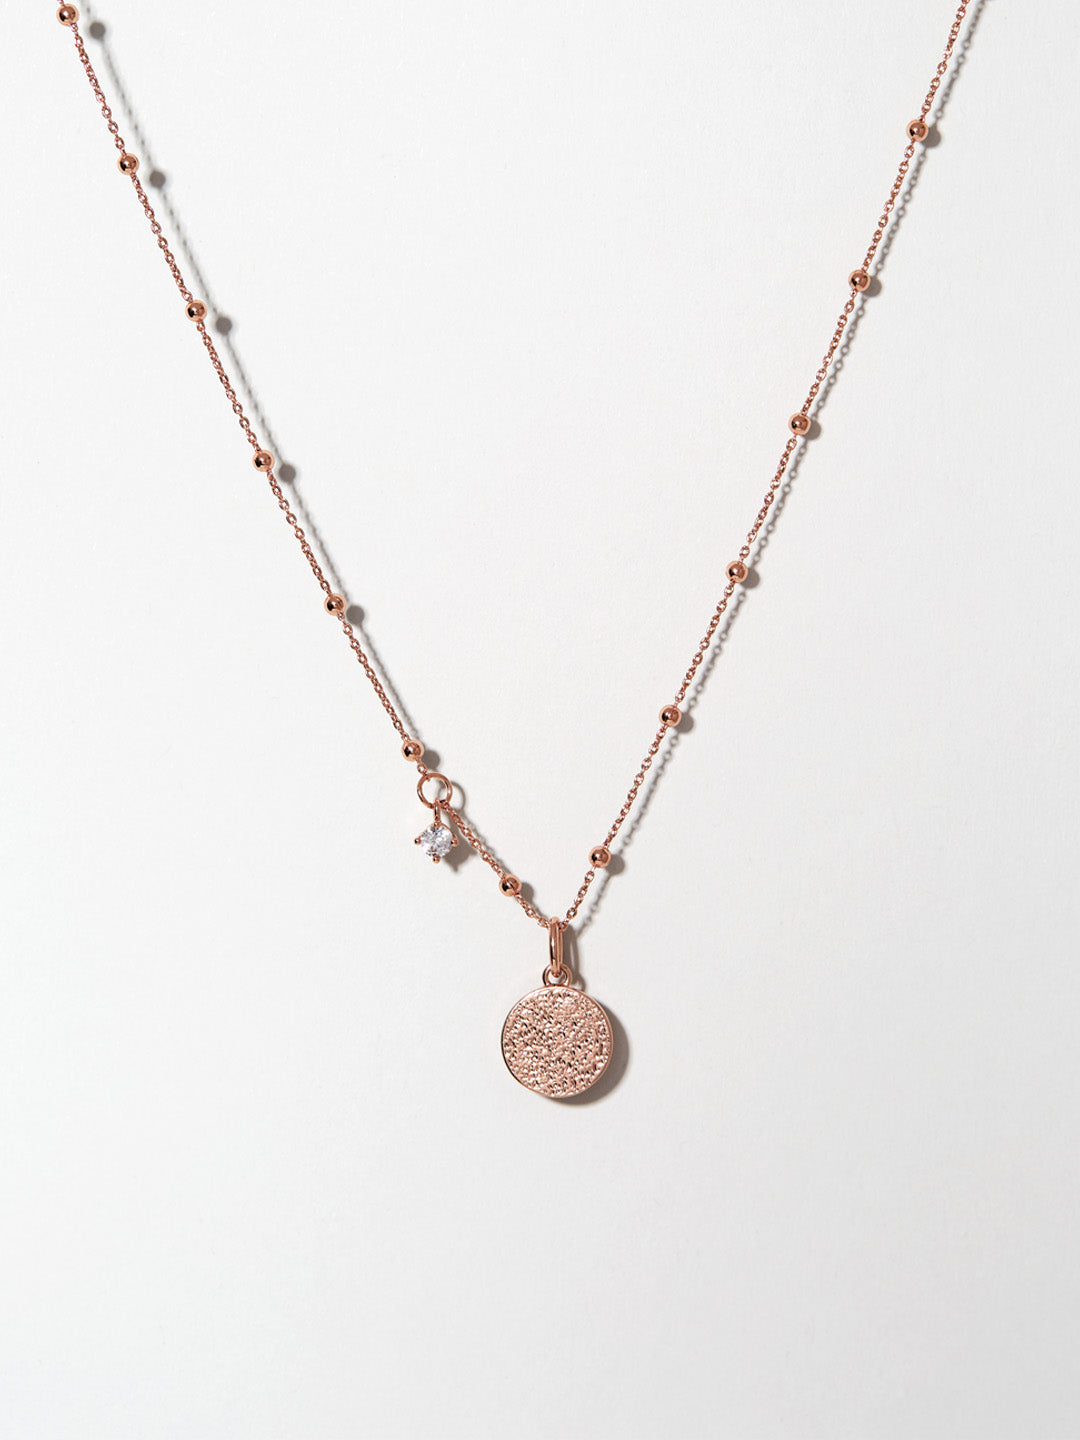 Ana Luisa Necklaces Pendant Necklace Arabic Coin Necklace Sophie Rose Gold